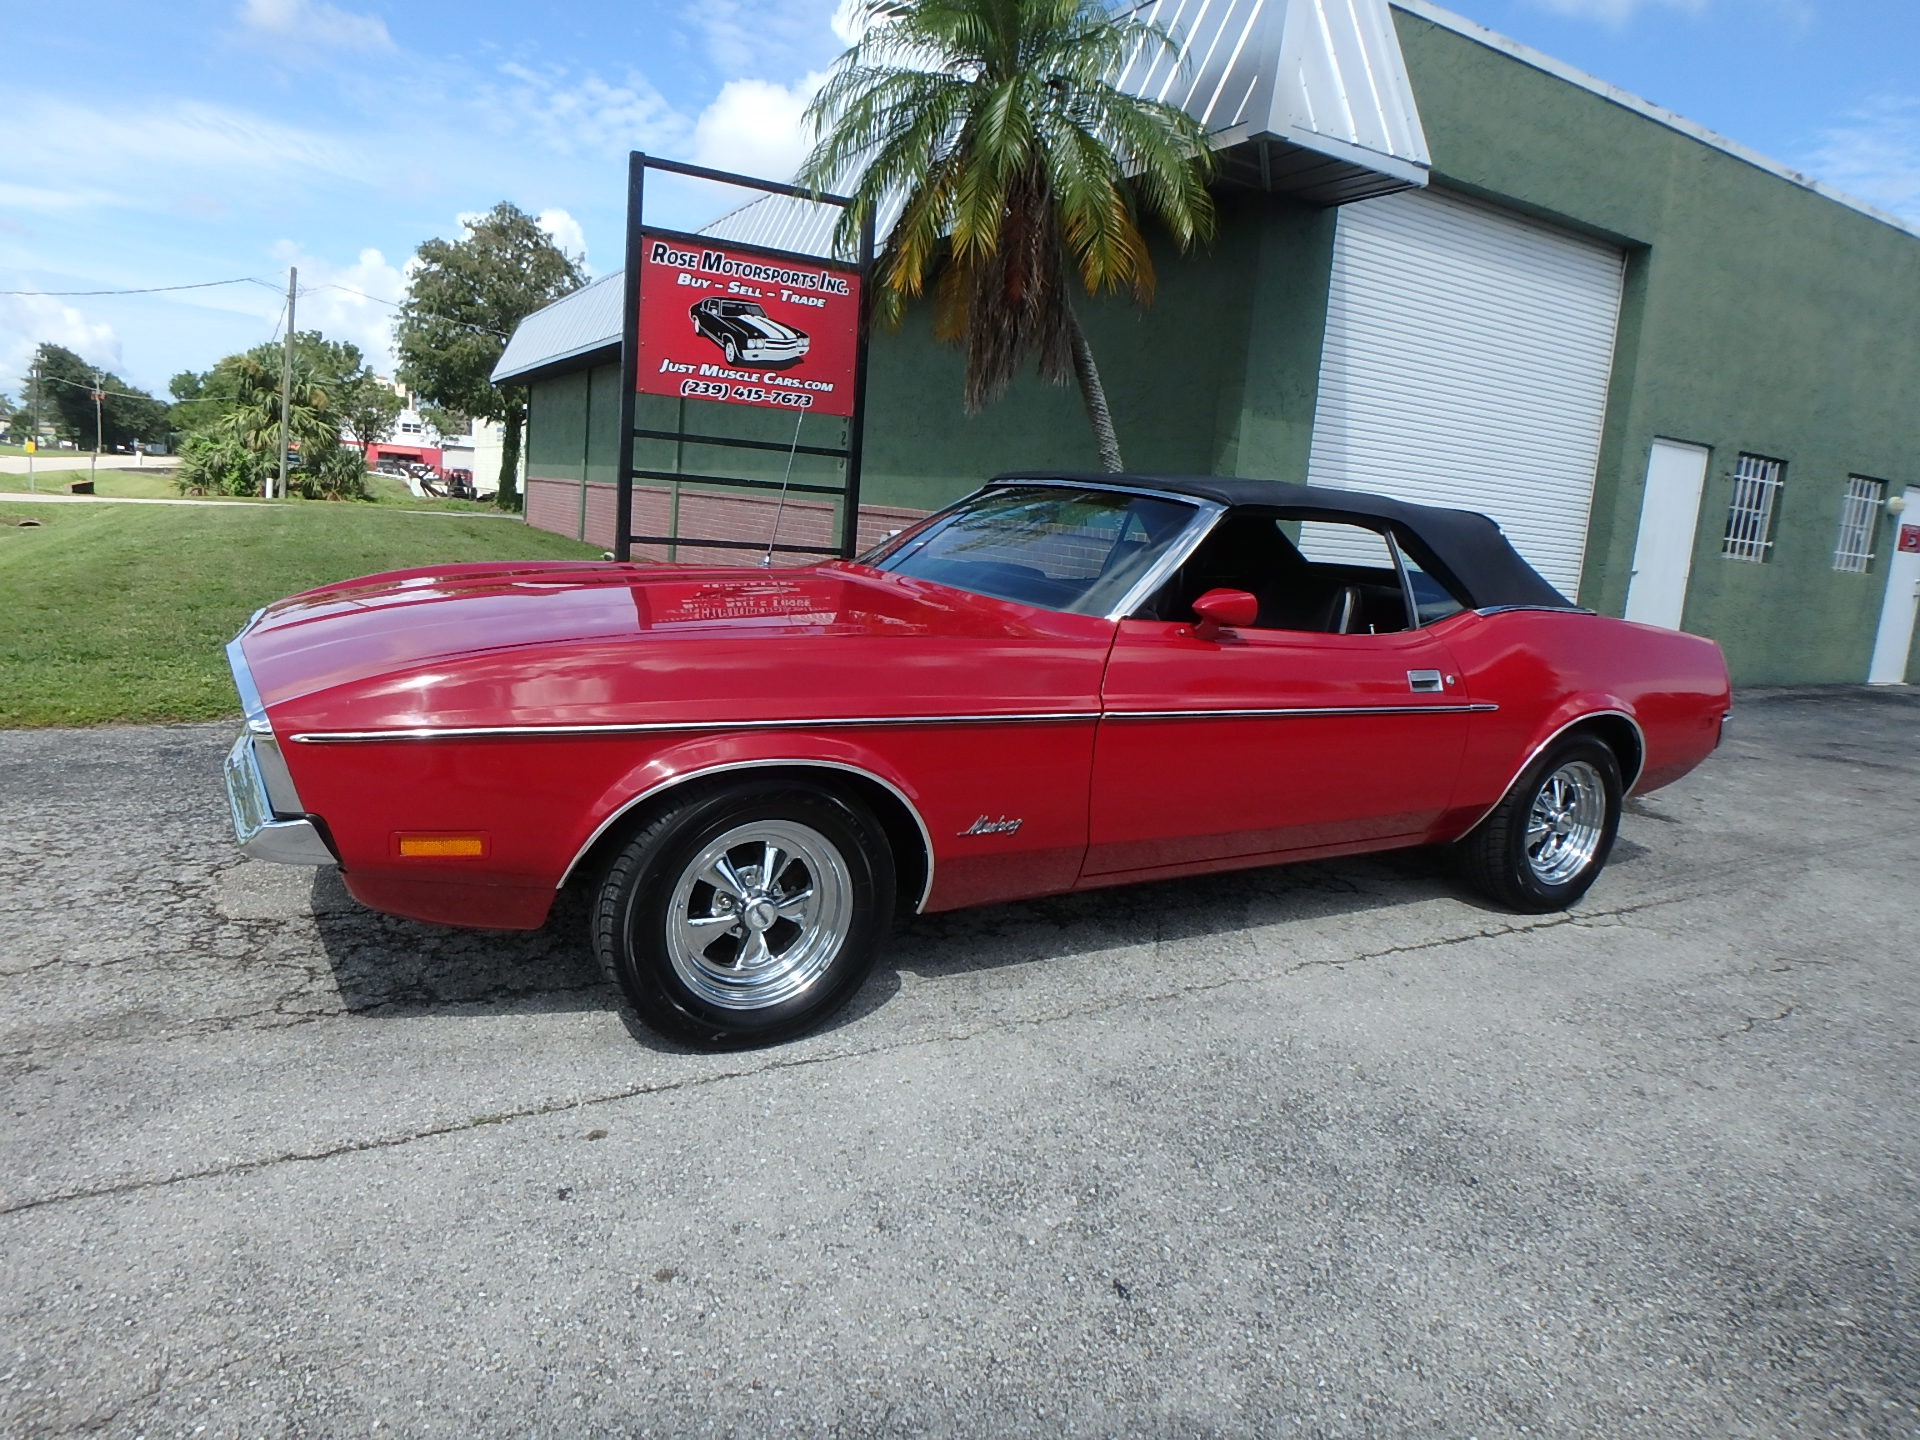 Used 1971 Ford Mustang Convertible For Sale 18 900 Rose Motorsports Inc Stock 2376